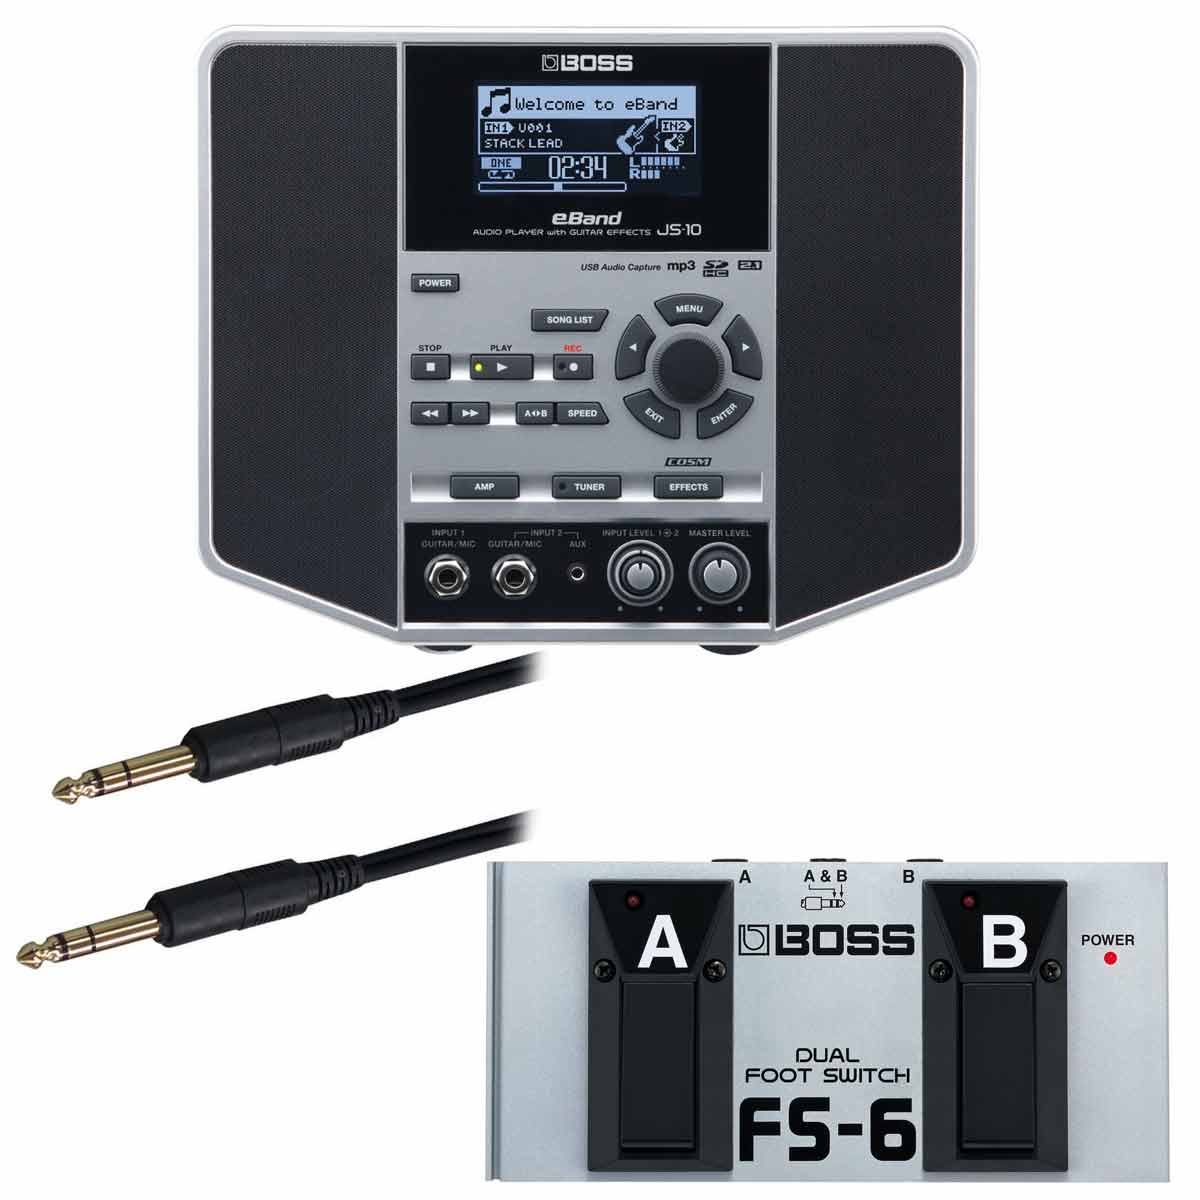 BOSS / eBand JS-10 【FS-6純正オプションフットスイッチセット】 AUDIO PLAYER with GUITAR EFFECTS【YRK】